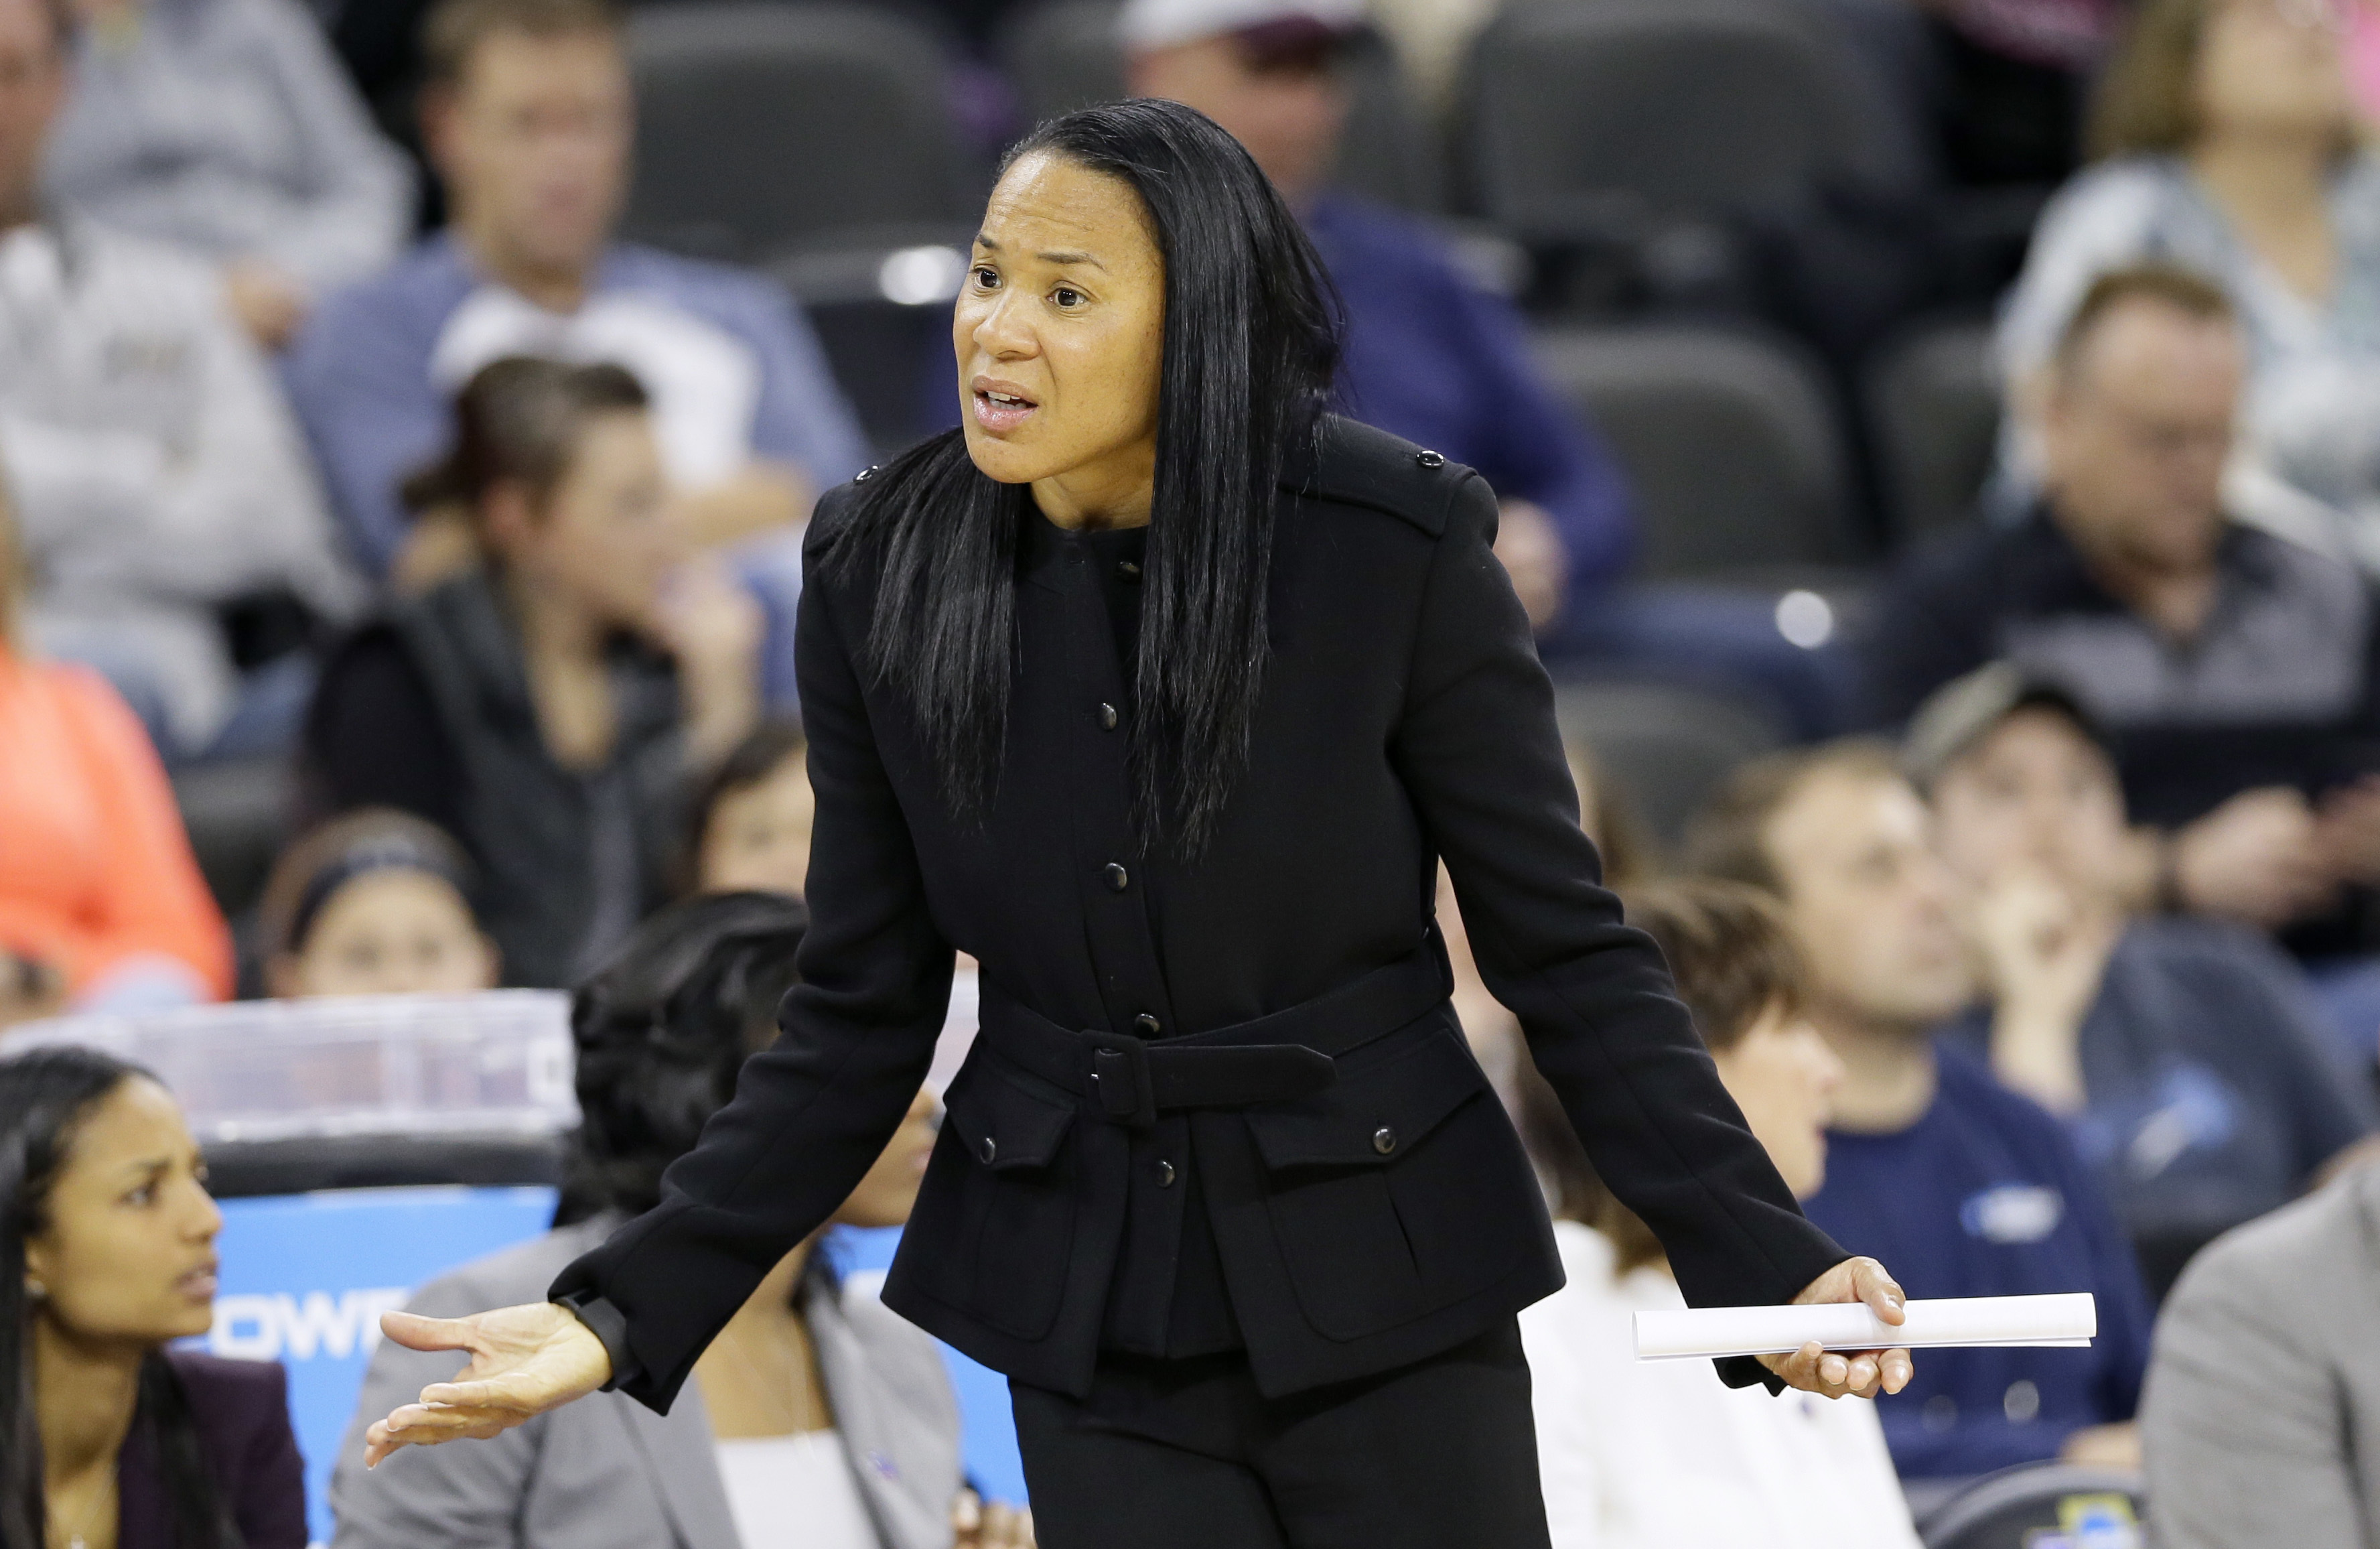 FILE - In this March 25, 2016 file photo, South Carolina head coach Dawn Staley reacts to a call during the first half of a regional semifinal women's college basketball game against Syracuse in the NCAA Tournament, in Sioux Falls, S.D. Dawn Staley said S